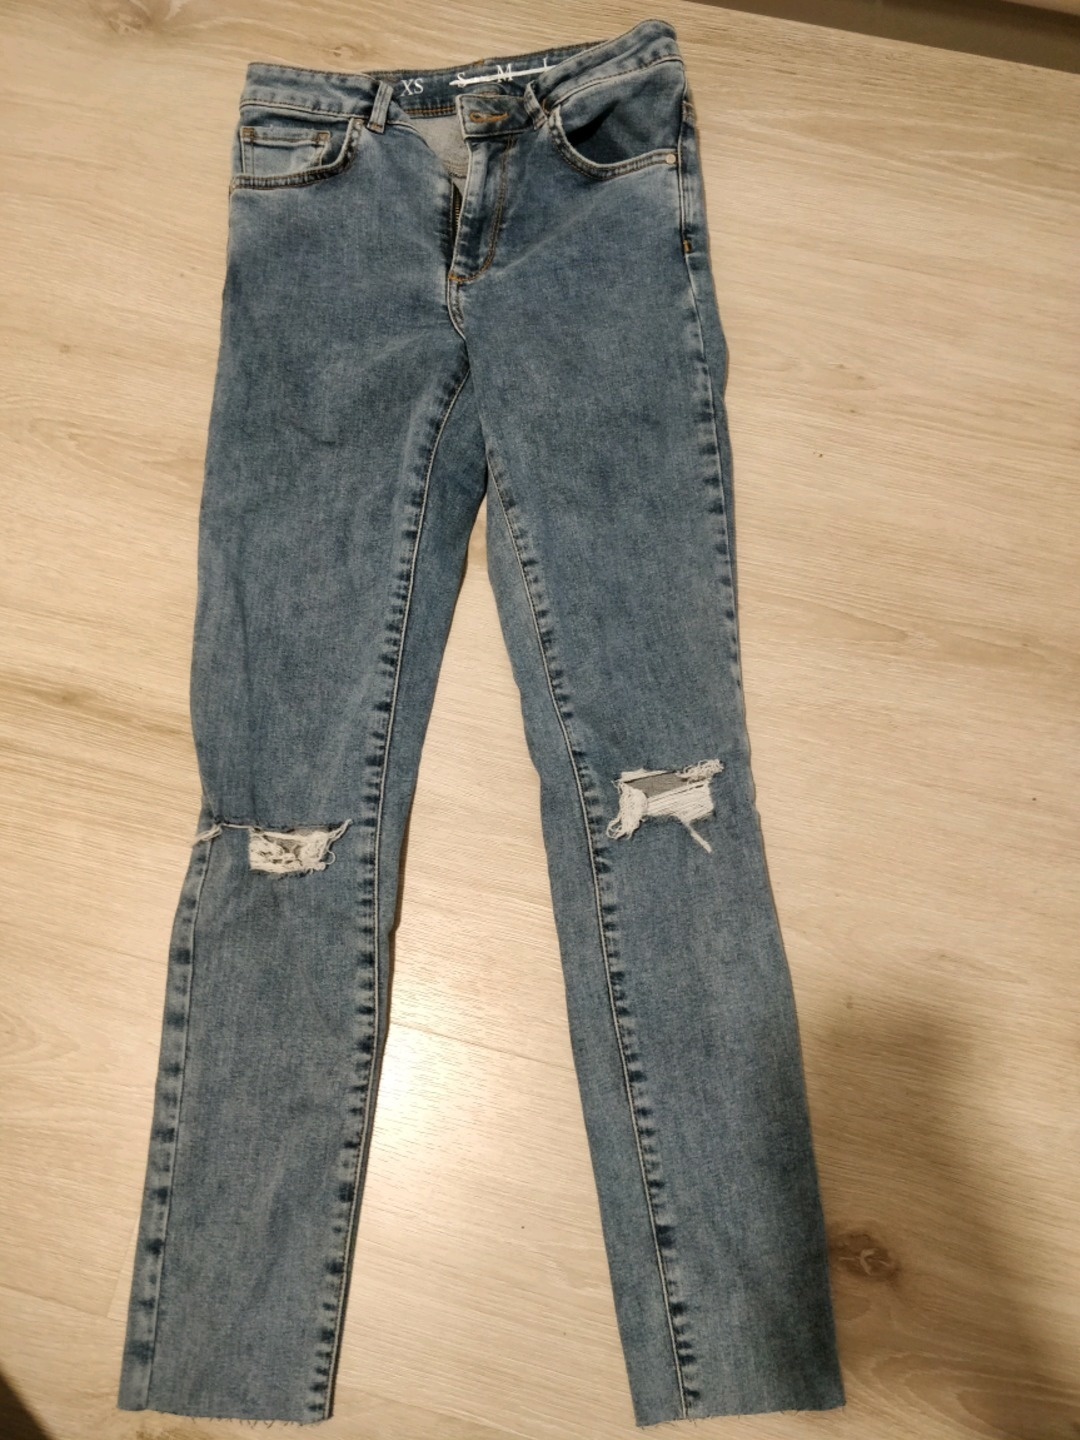 Damers bukser og jeans - BIK BOK photo 3